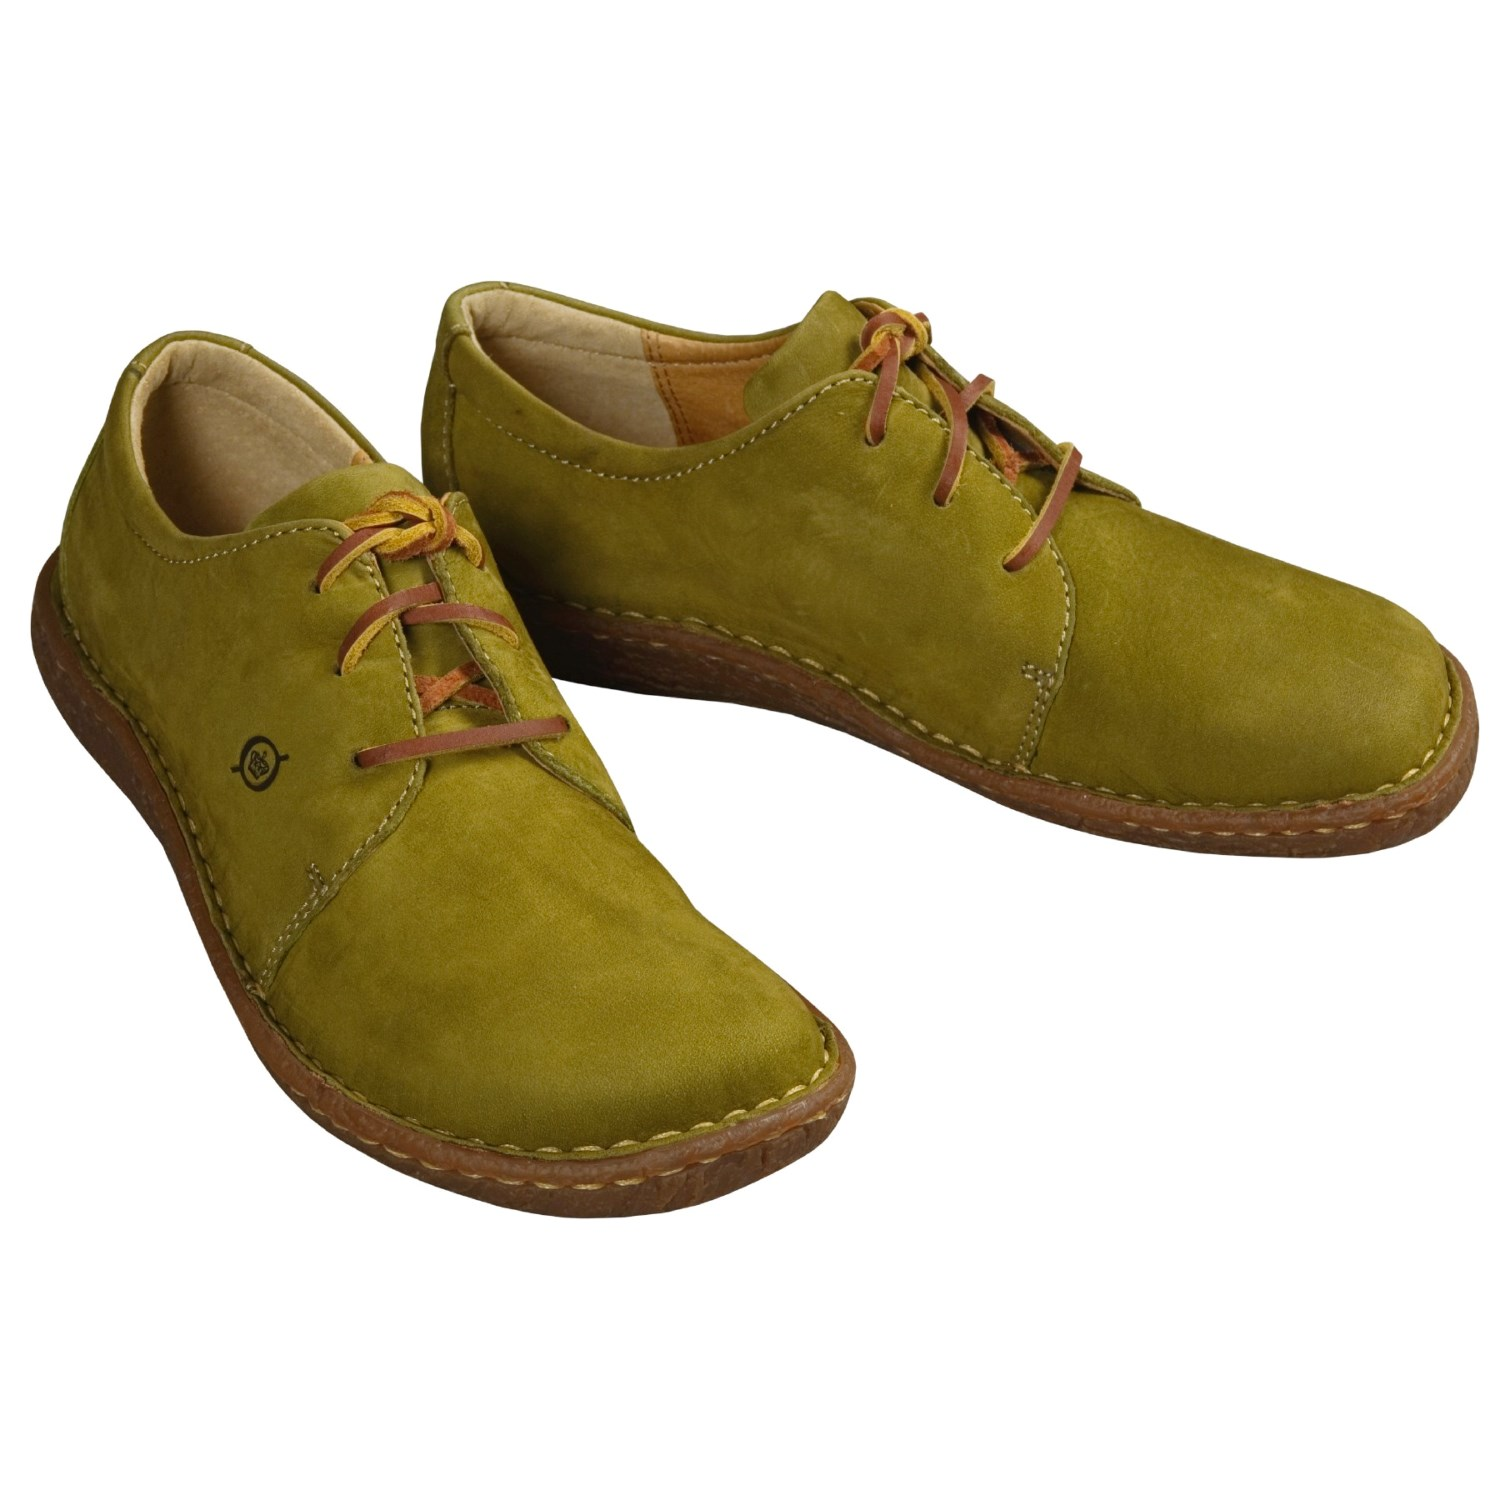 Shop for Born Shoes for Women, Men & Kids | Dillard's at cheapwomensclothes.tk Visit cheapwomensclothes.tk to find clothing, accessories, shoes, cosmetics & more. The Style of Your Life.